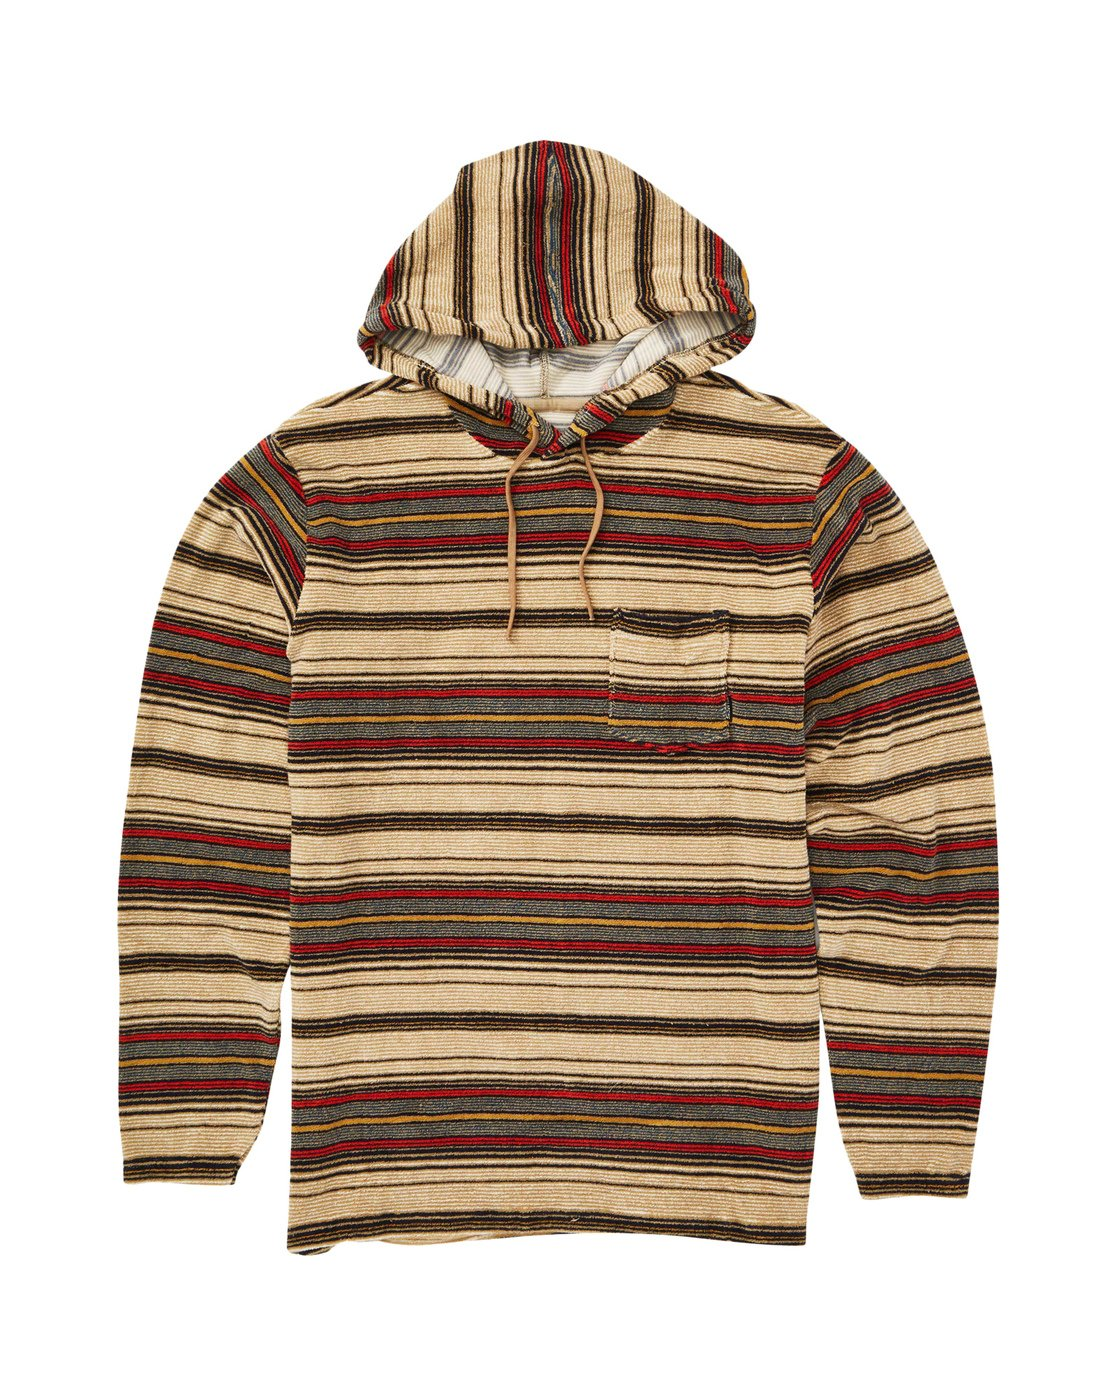 Billabong Flecker Ensenada Men's Hoodie